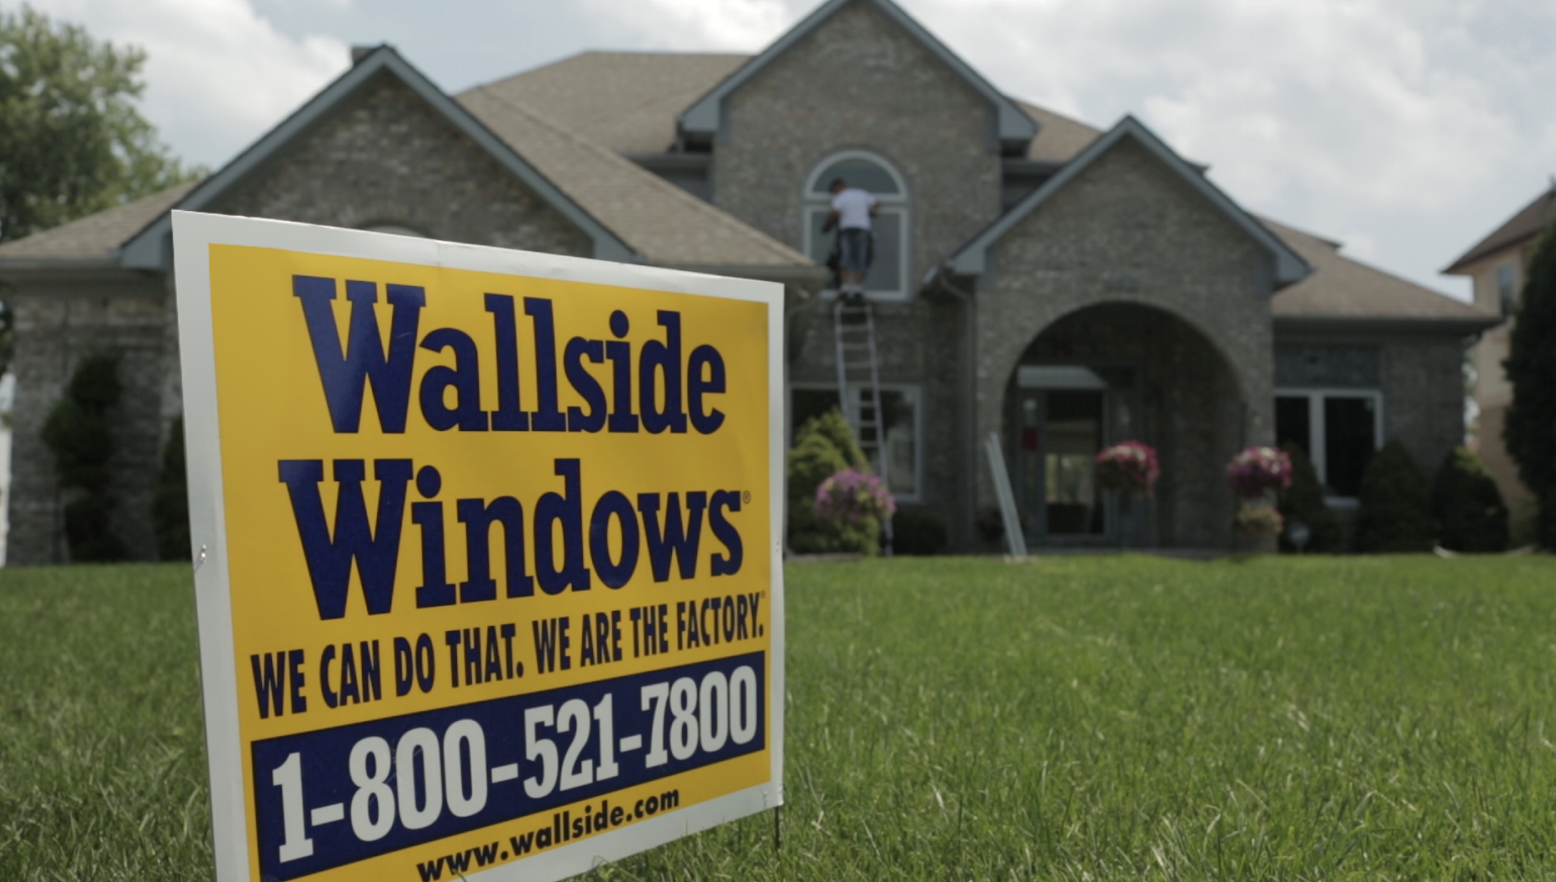 Wallside Windows is working with Wells Fargo to create a never-before seen offer for financing your vinyl replacement windows this year.